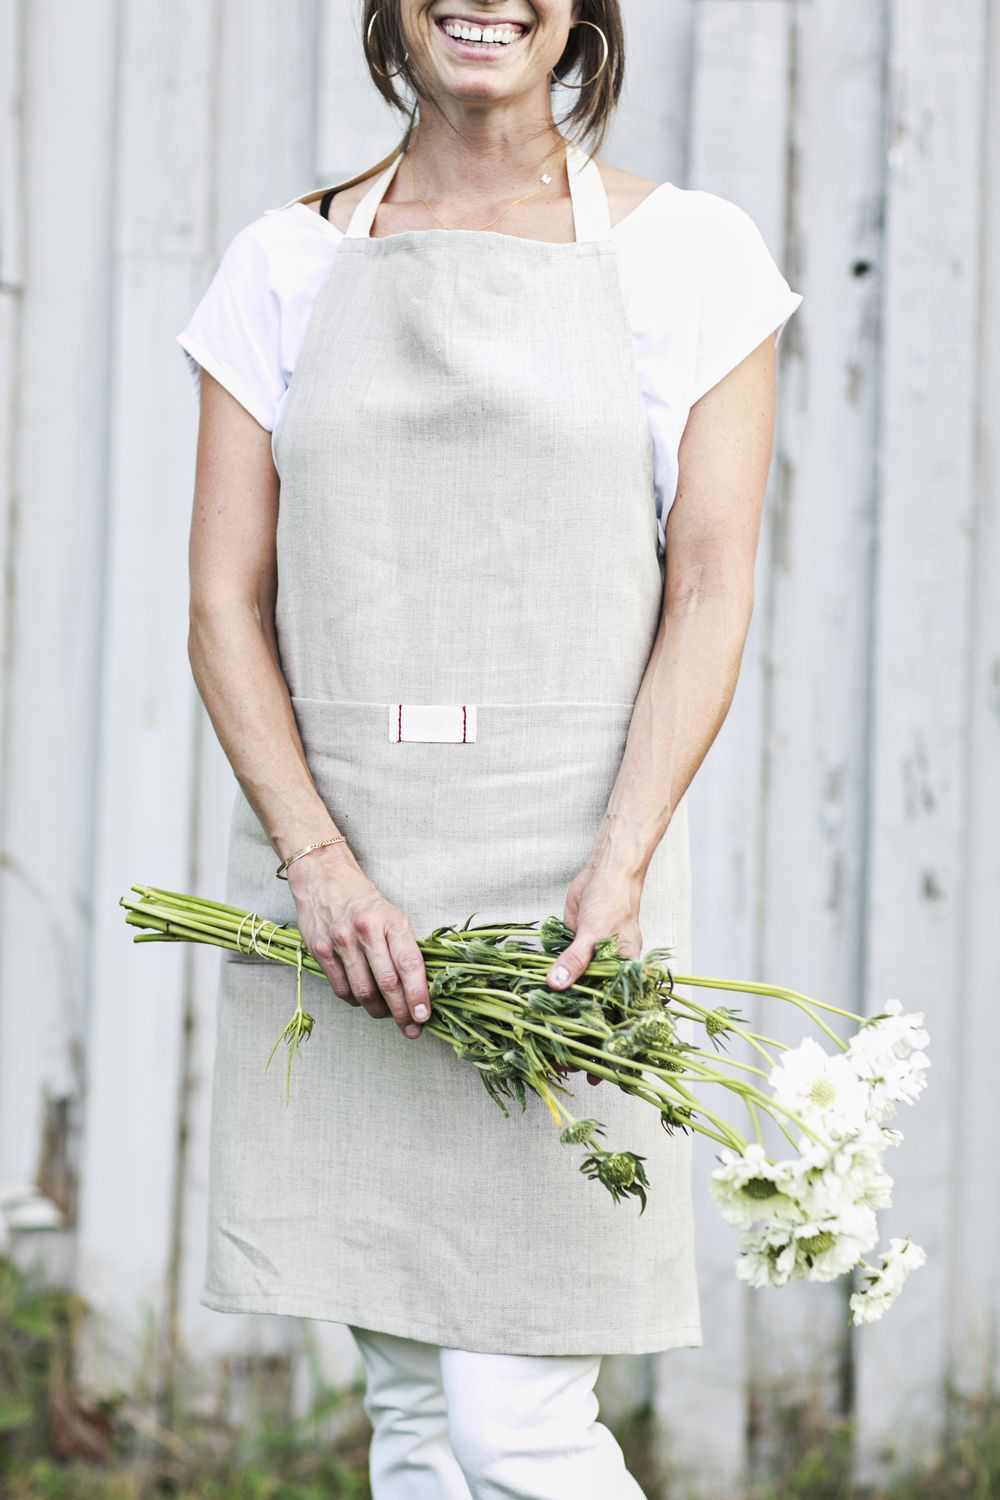 Full bistro apron with pocket. heirloomed is a 100 linen